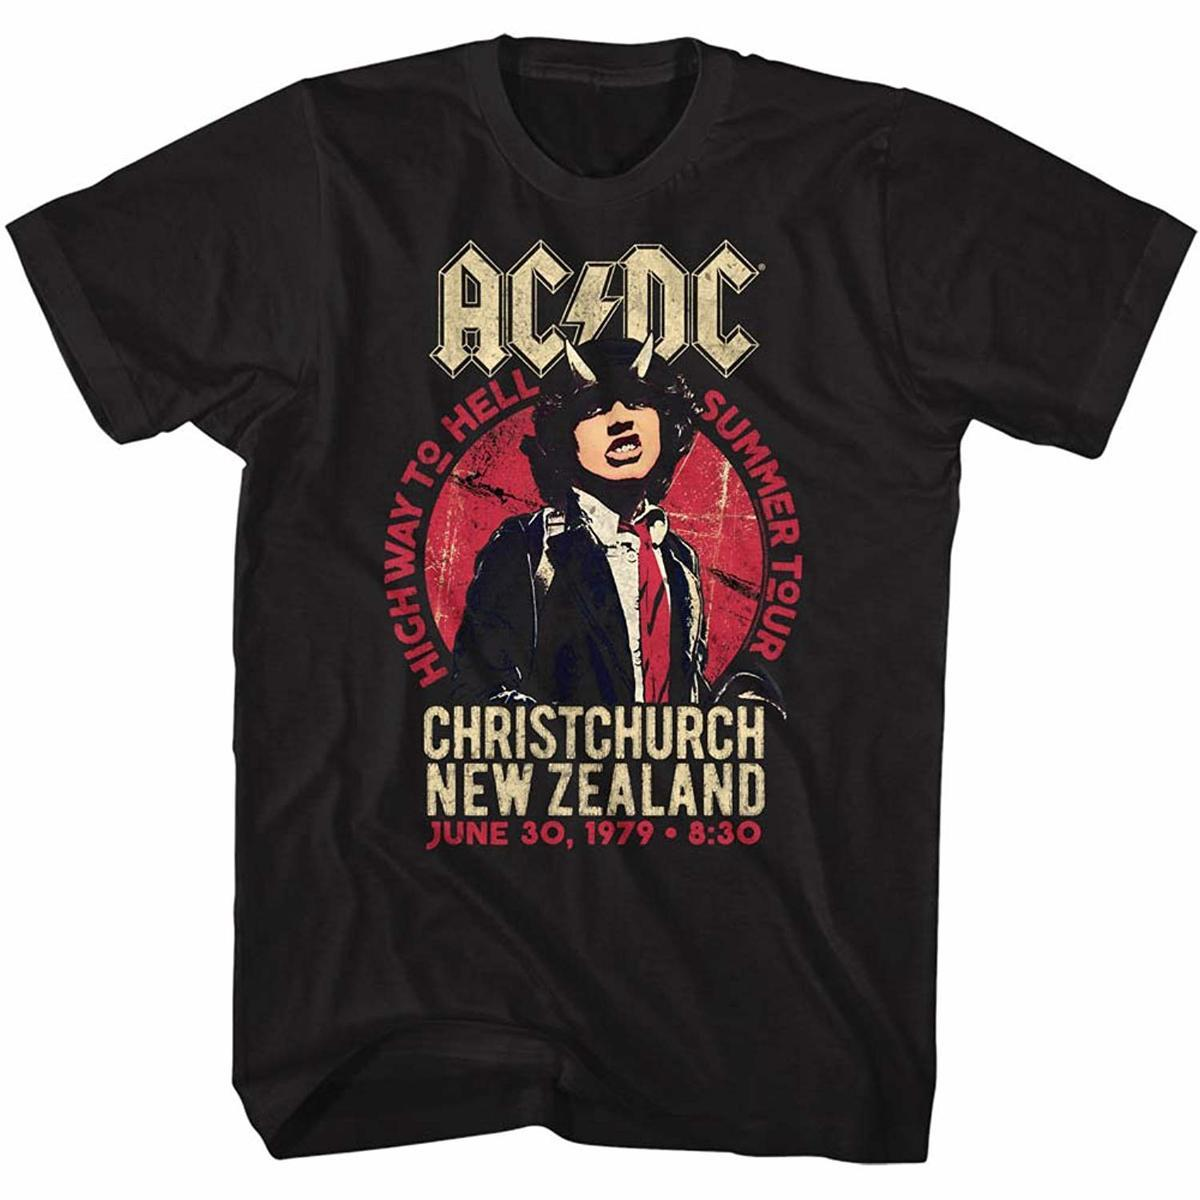 d29cc643c AC/DC Mens NZ Tour T Shirt 100% Cotton T Shirts Brand Clothing Tops Tees  Cotton Low Price Plus Size For Teen Boys Harajuku Online Buy T Shirt Best T  Shirt ...